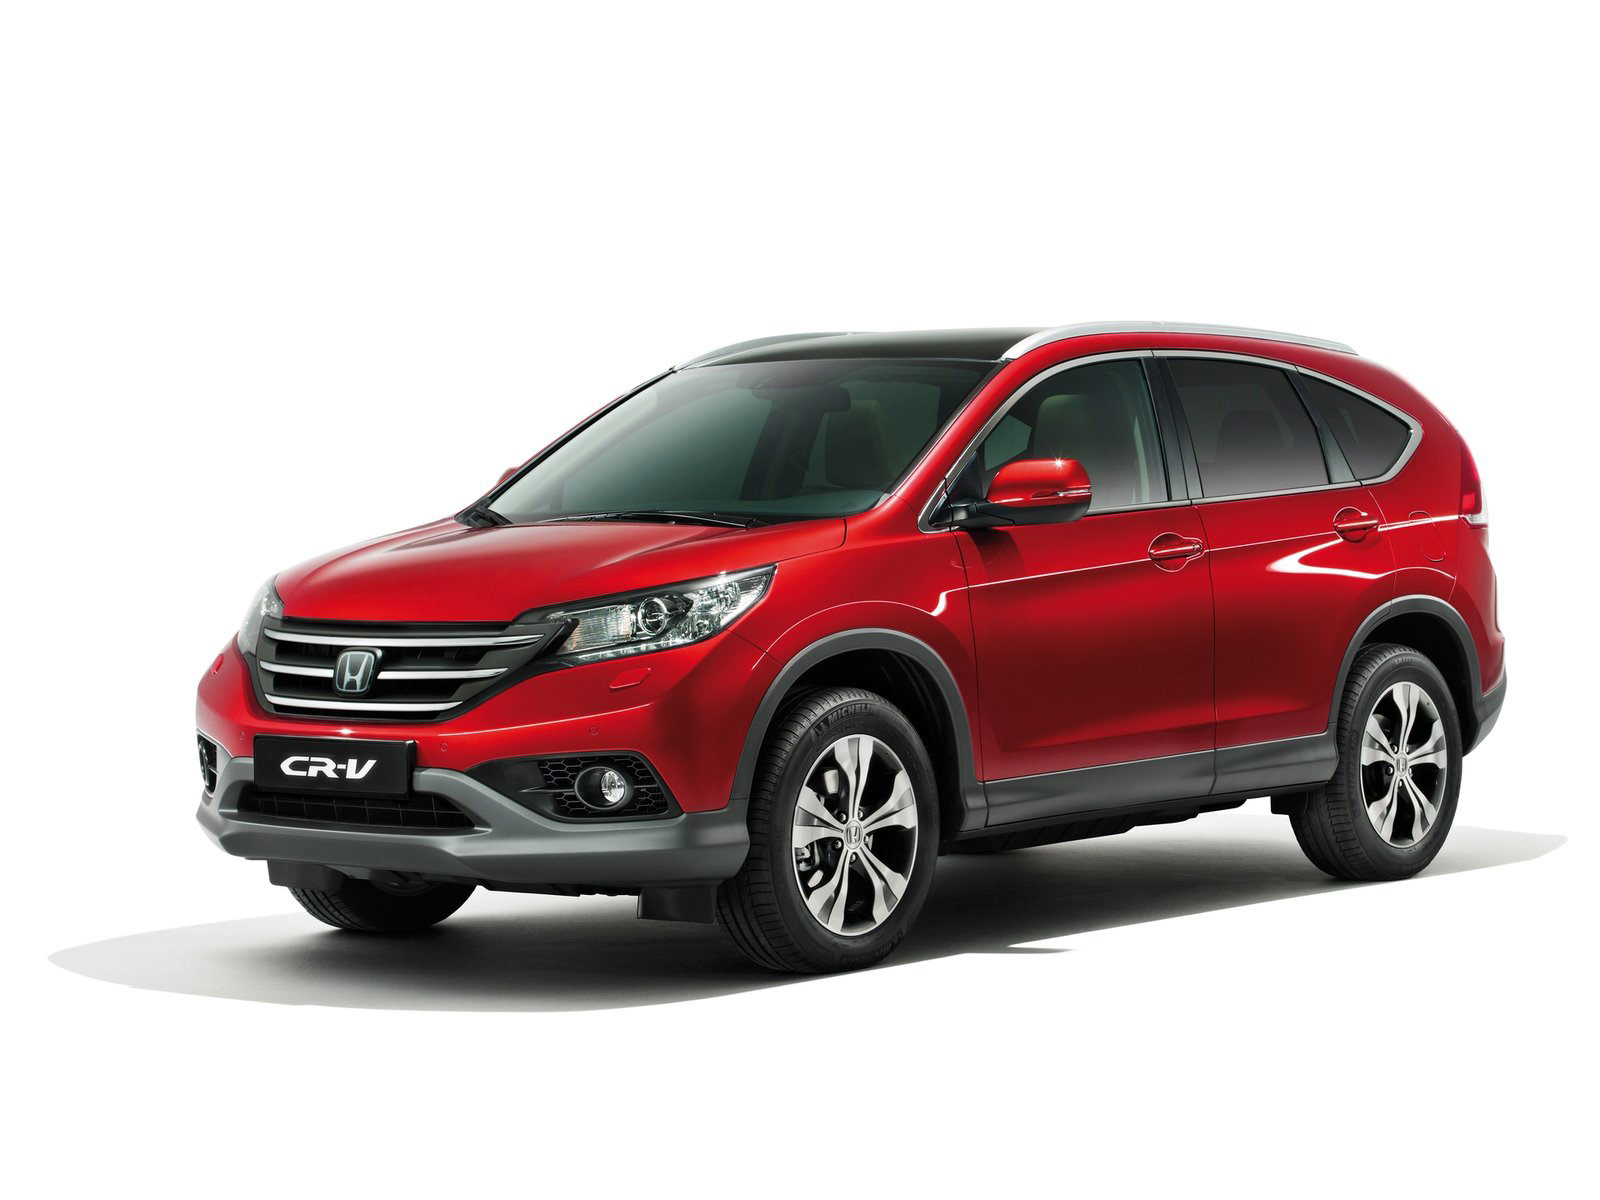 2013 Honda Cr V Japanese Car Photos